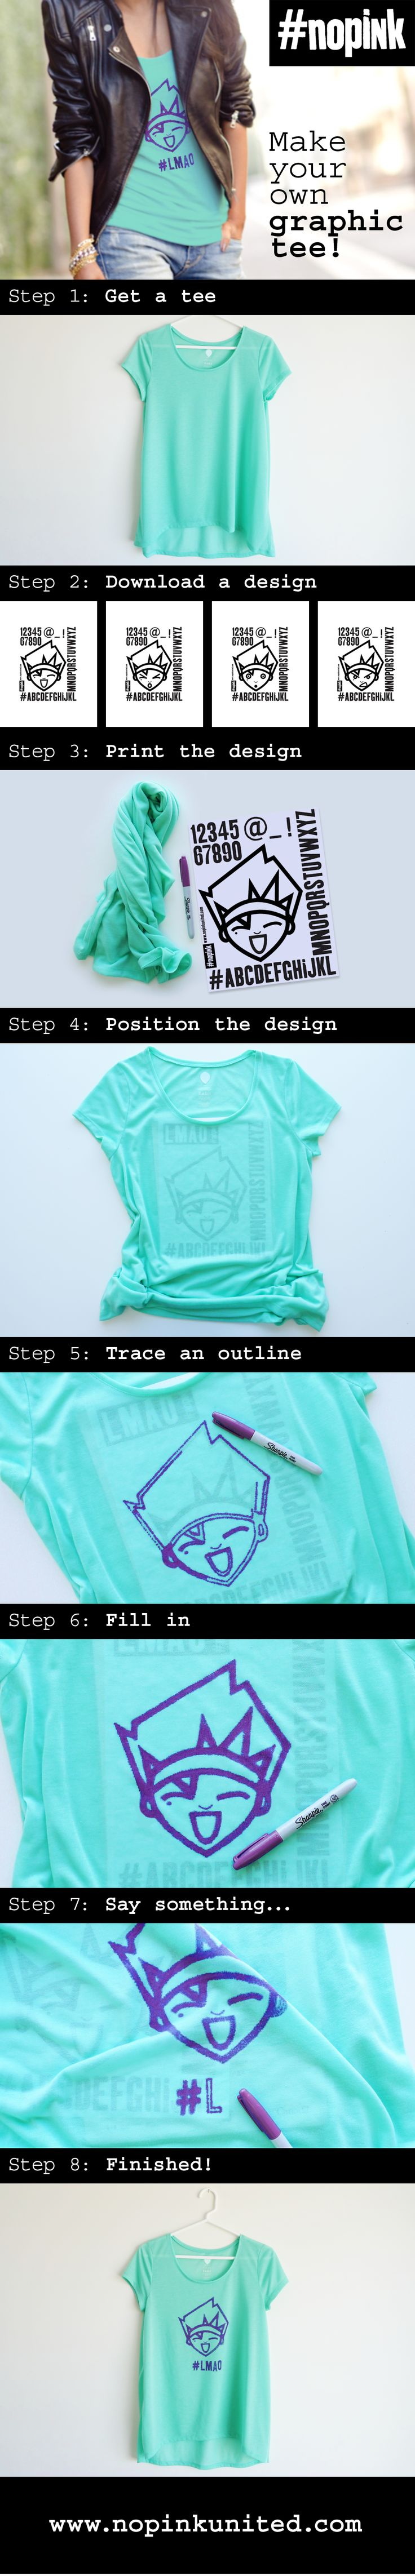 Make your own DIY graphic tee! It's super easy! All you need is a tee, a design and a sharpie pen! Download your design sheet now from: www.nopinkunited.com